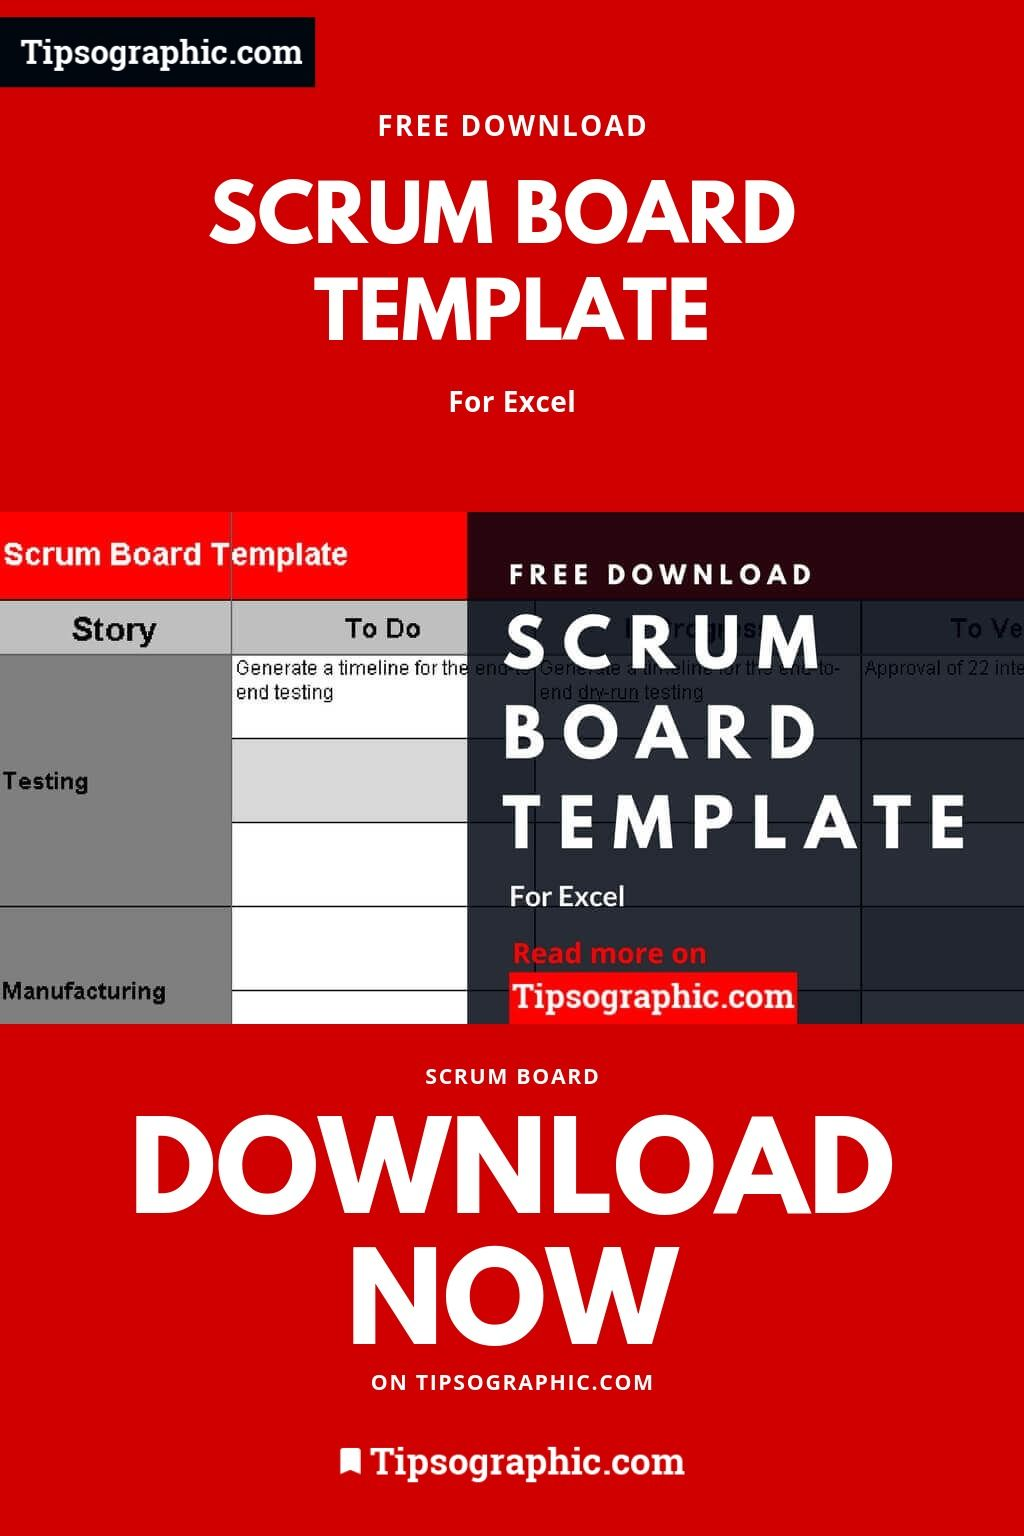 Scrum Board Template For Excel Free Download Tipsographic Scrum Board Agile Project Management Templates Scrum